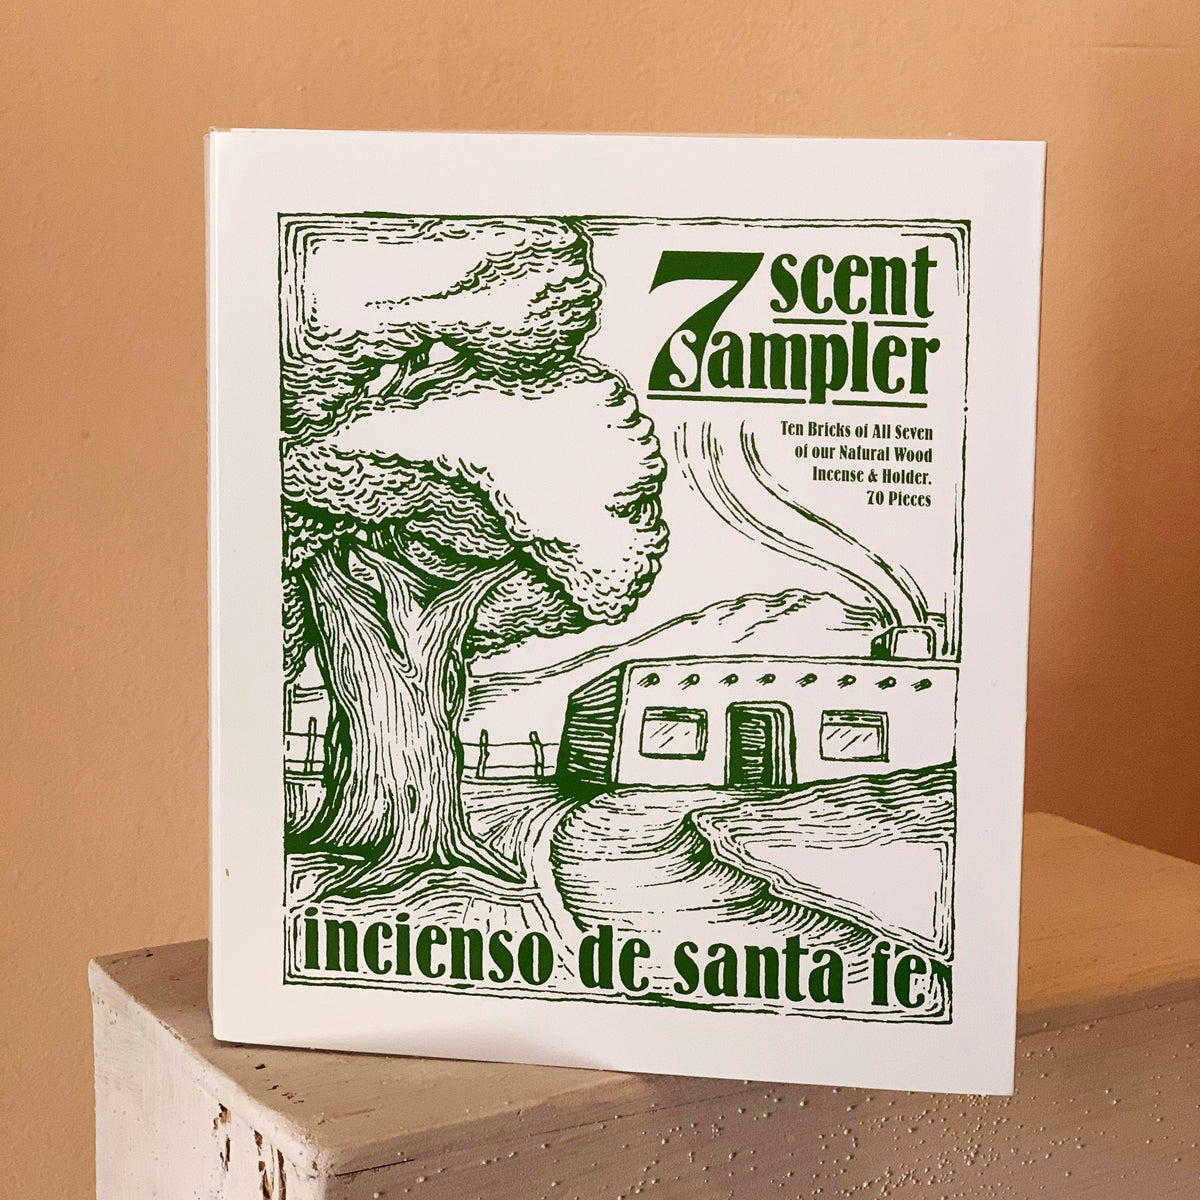 Incense de Santa Fe Sampler Pack